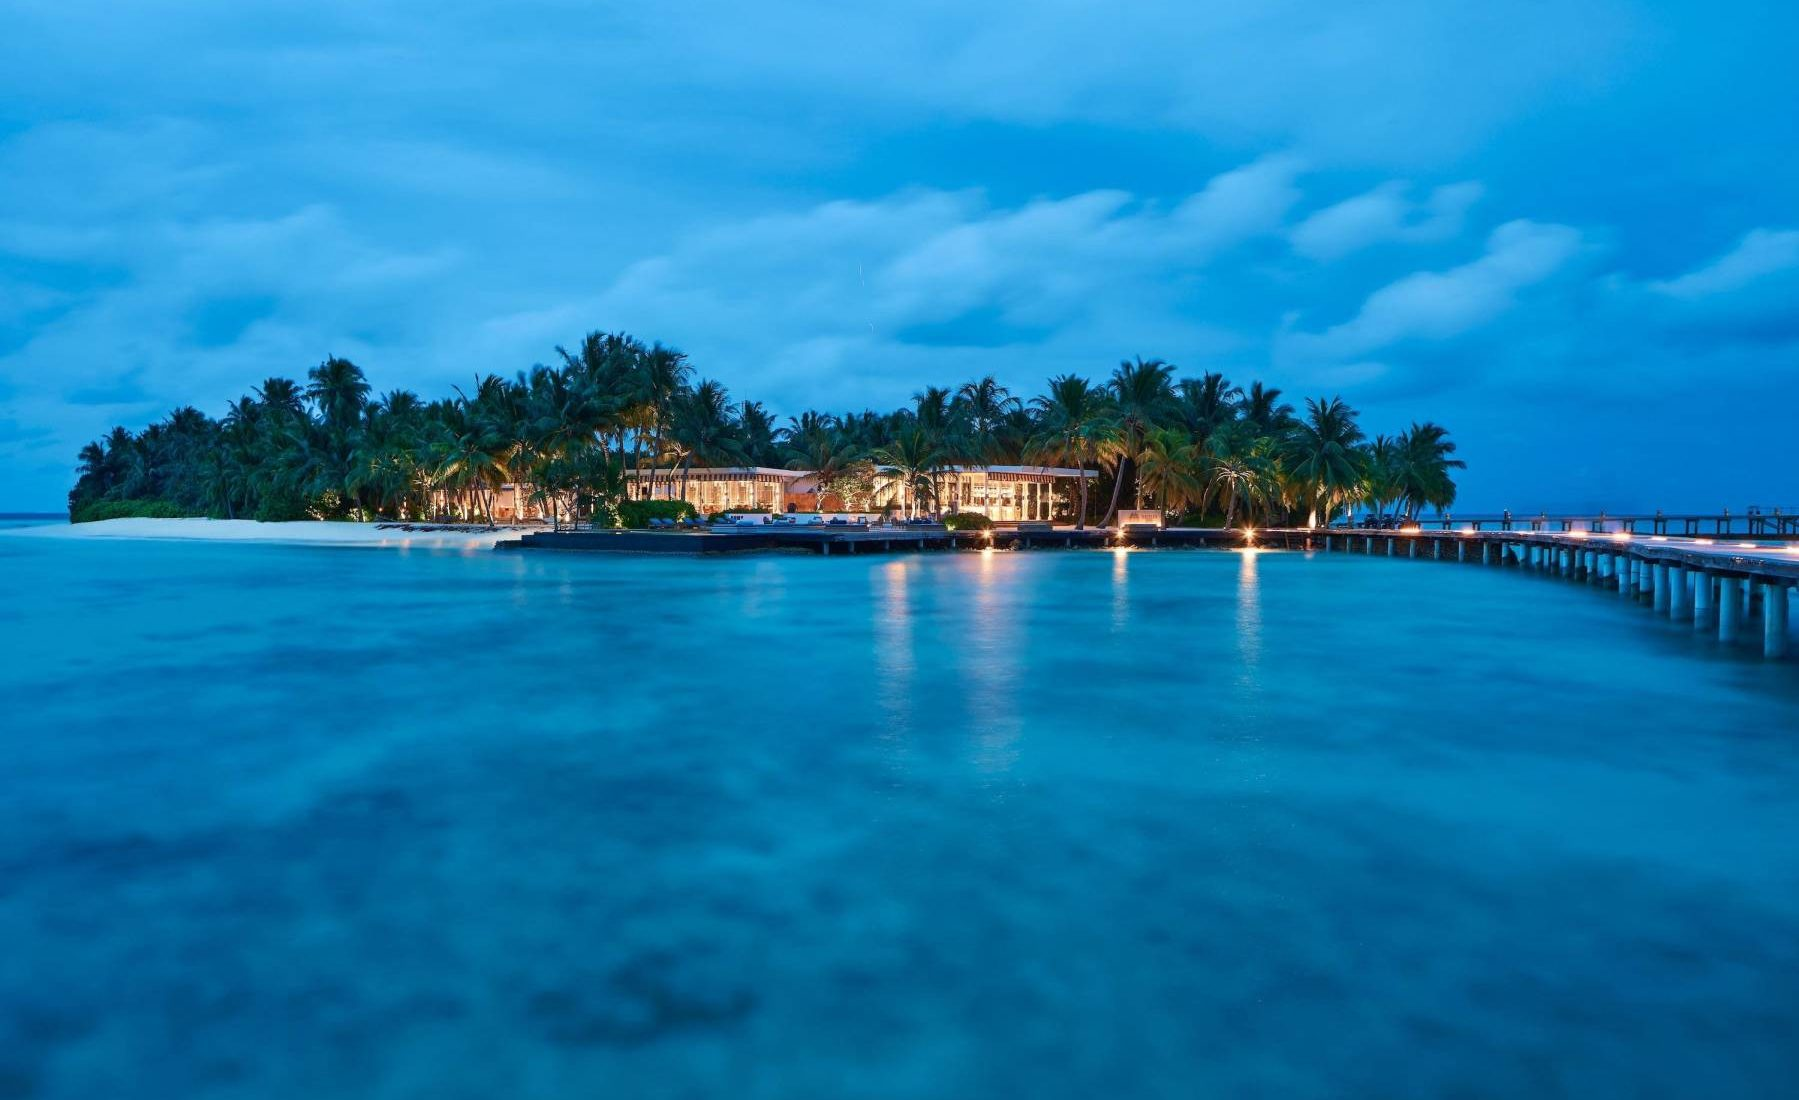 Raffles Maldives Meradhoo - Two private islands